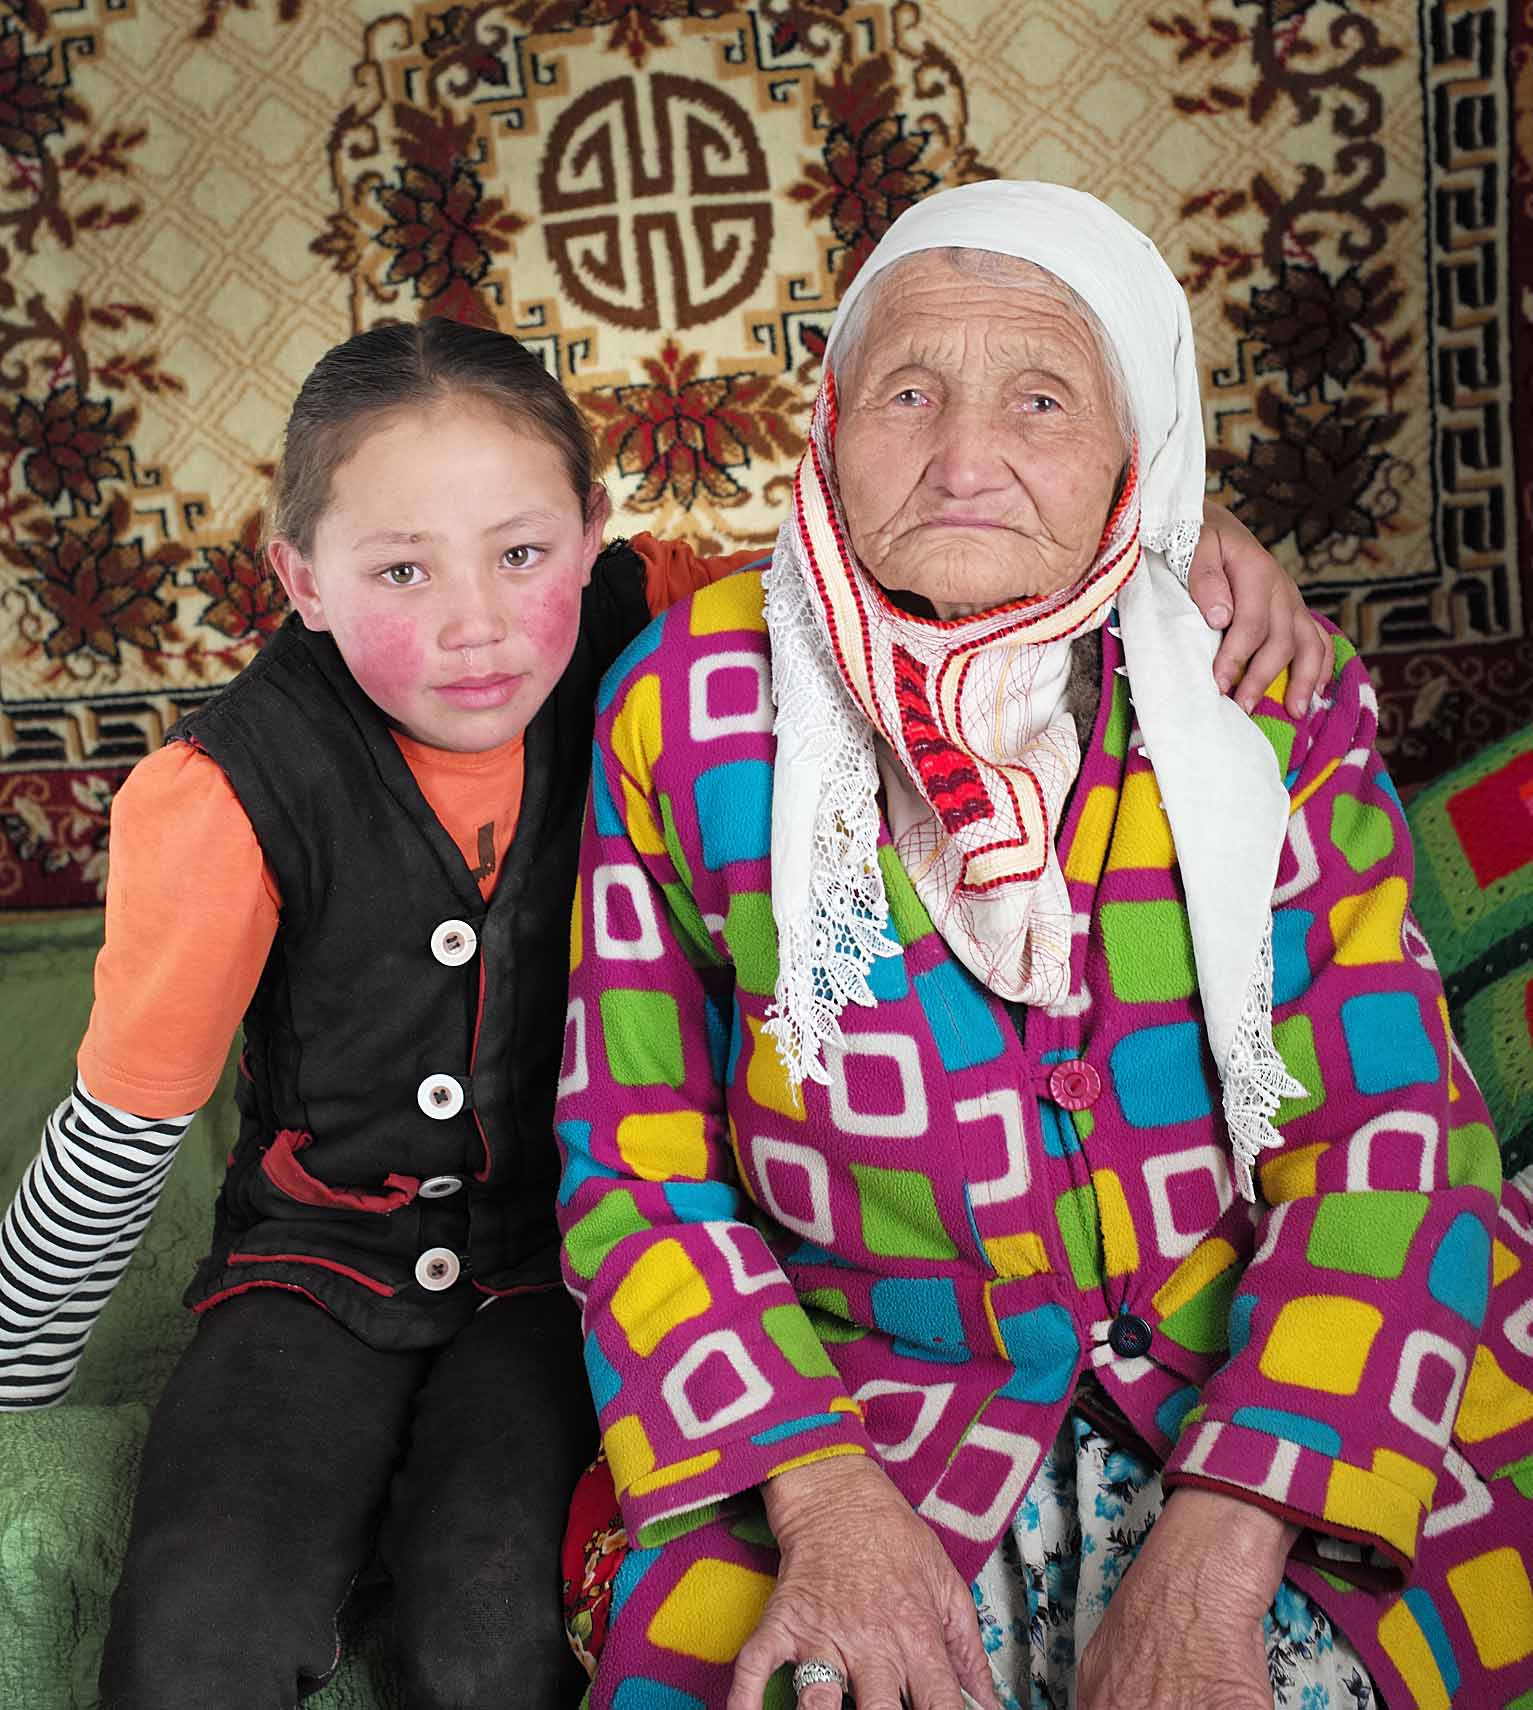 Akerke and Anikei still needed each other but their roles had reversed. The girl with a learning disability had developed and was able to support her aging grandmother. The girl who had been led by her grandmother now took the lead and hugged her grandmother gently. Her different life, like the other 'Different Lives in Mongolia', has important lessons for us all.